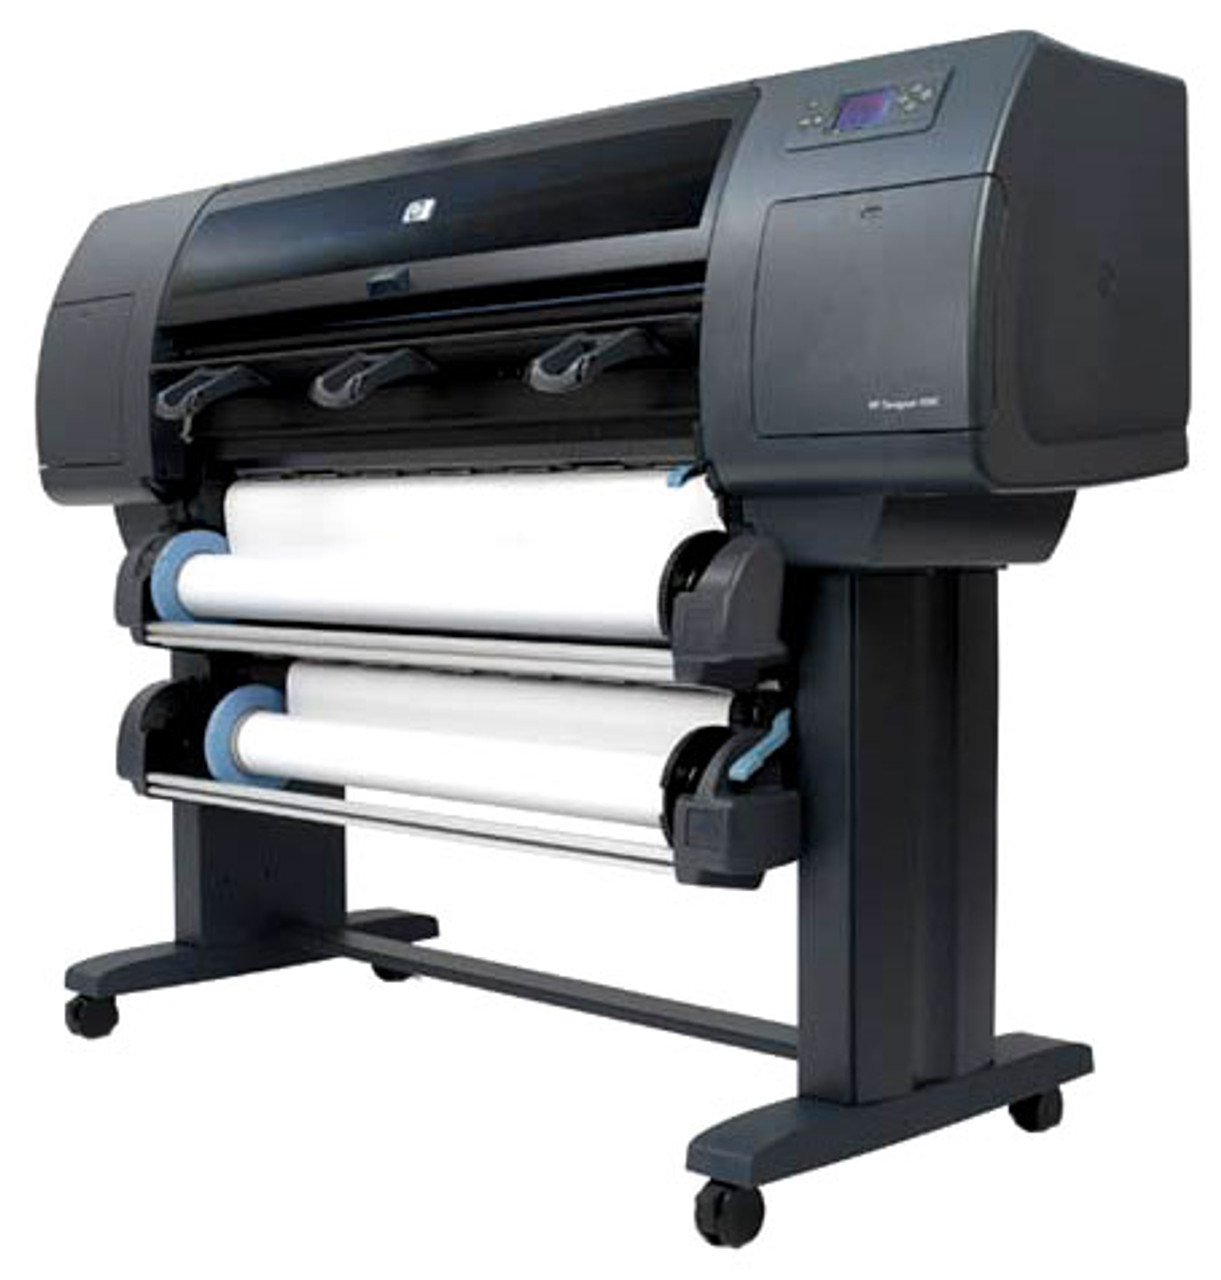 HP DJ 4500PS plotter for sale